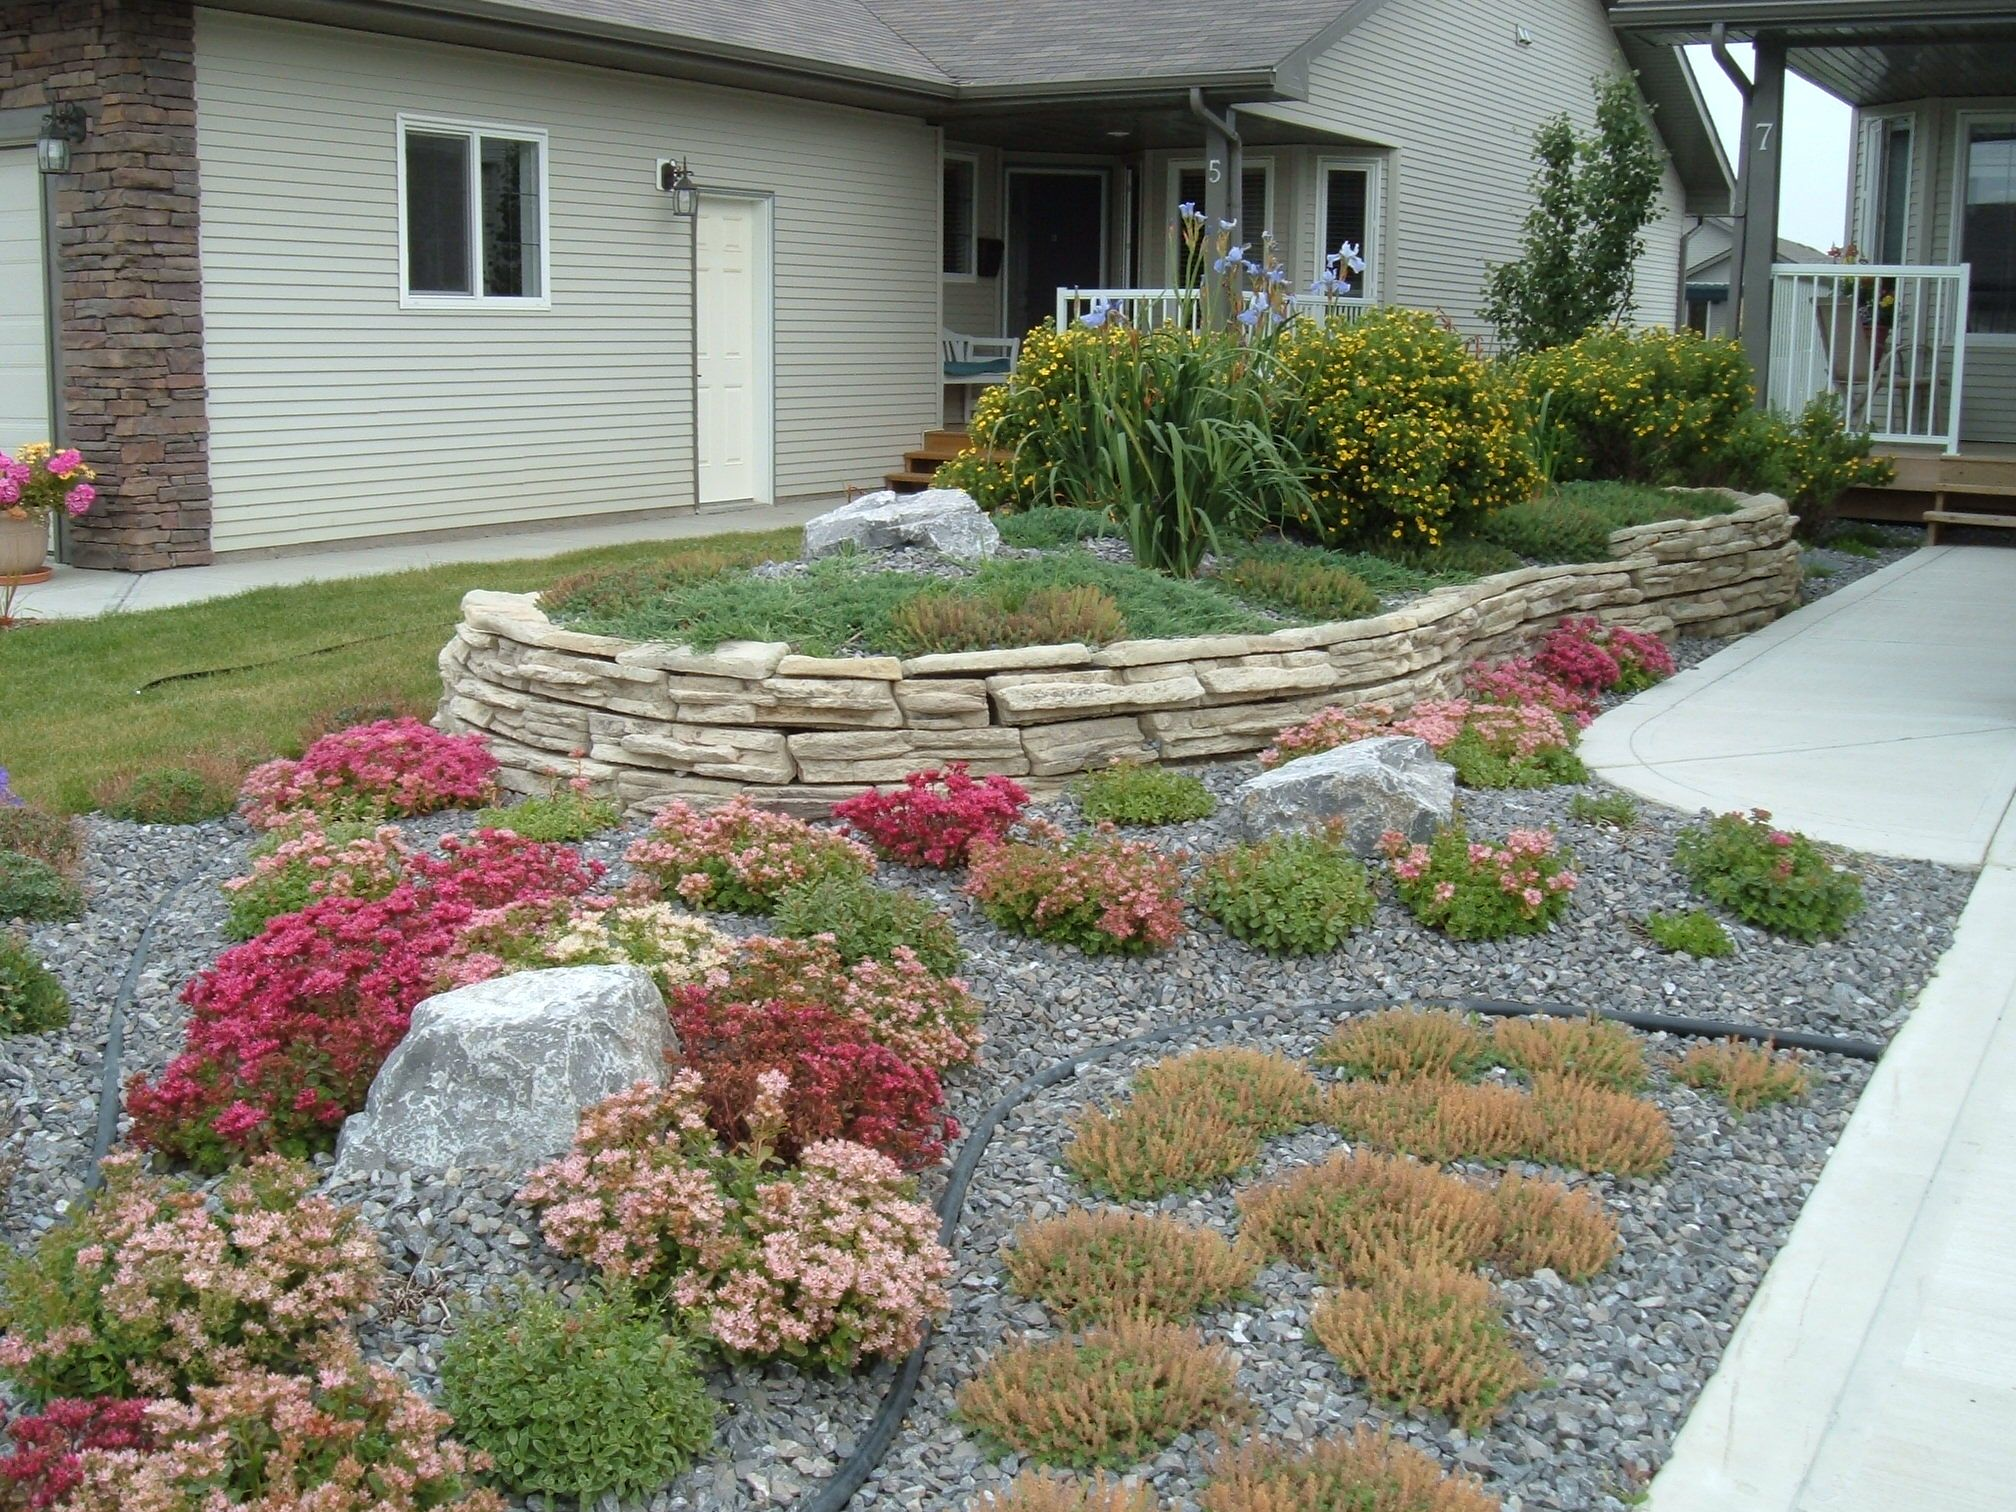 Minimal maintenance landscaping a no lawn front yard with for Front yard garden ideas designs